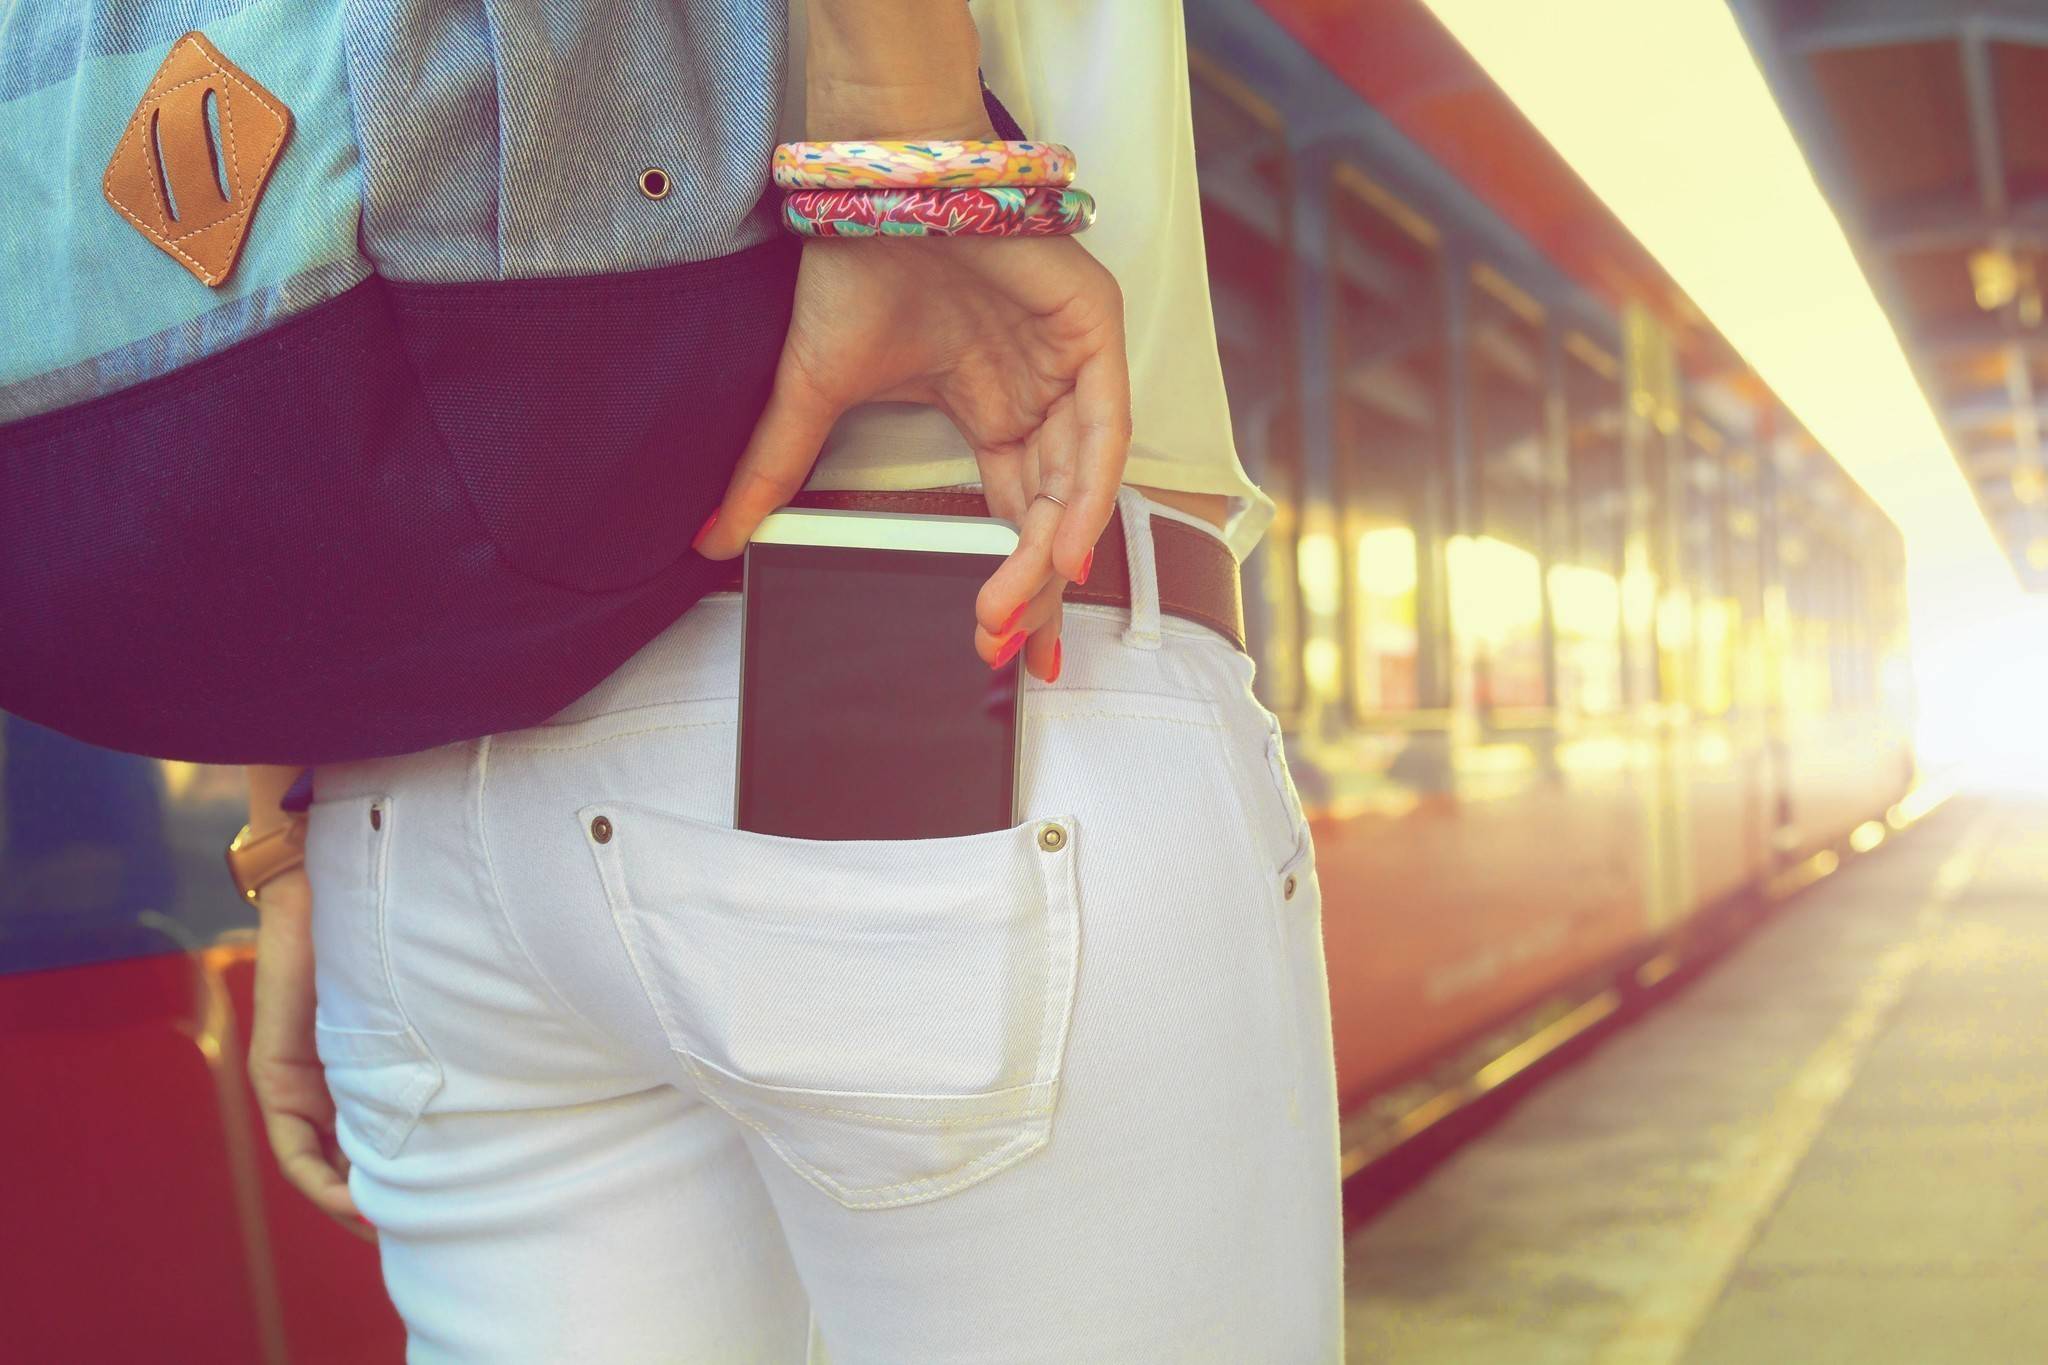 Are you carrying your cellphone too close to your body? - Chicago Tribune